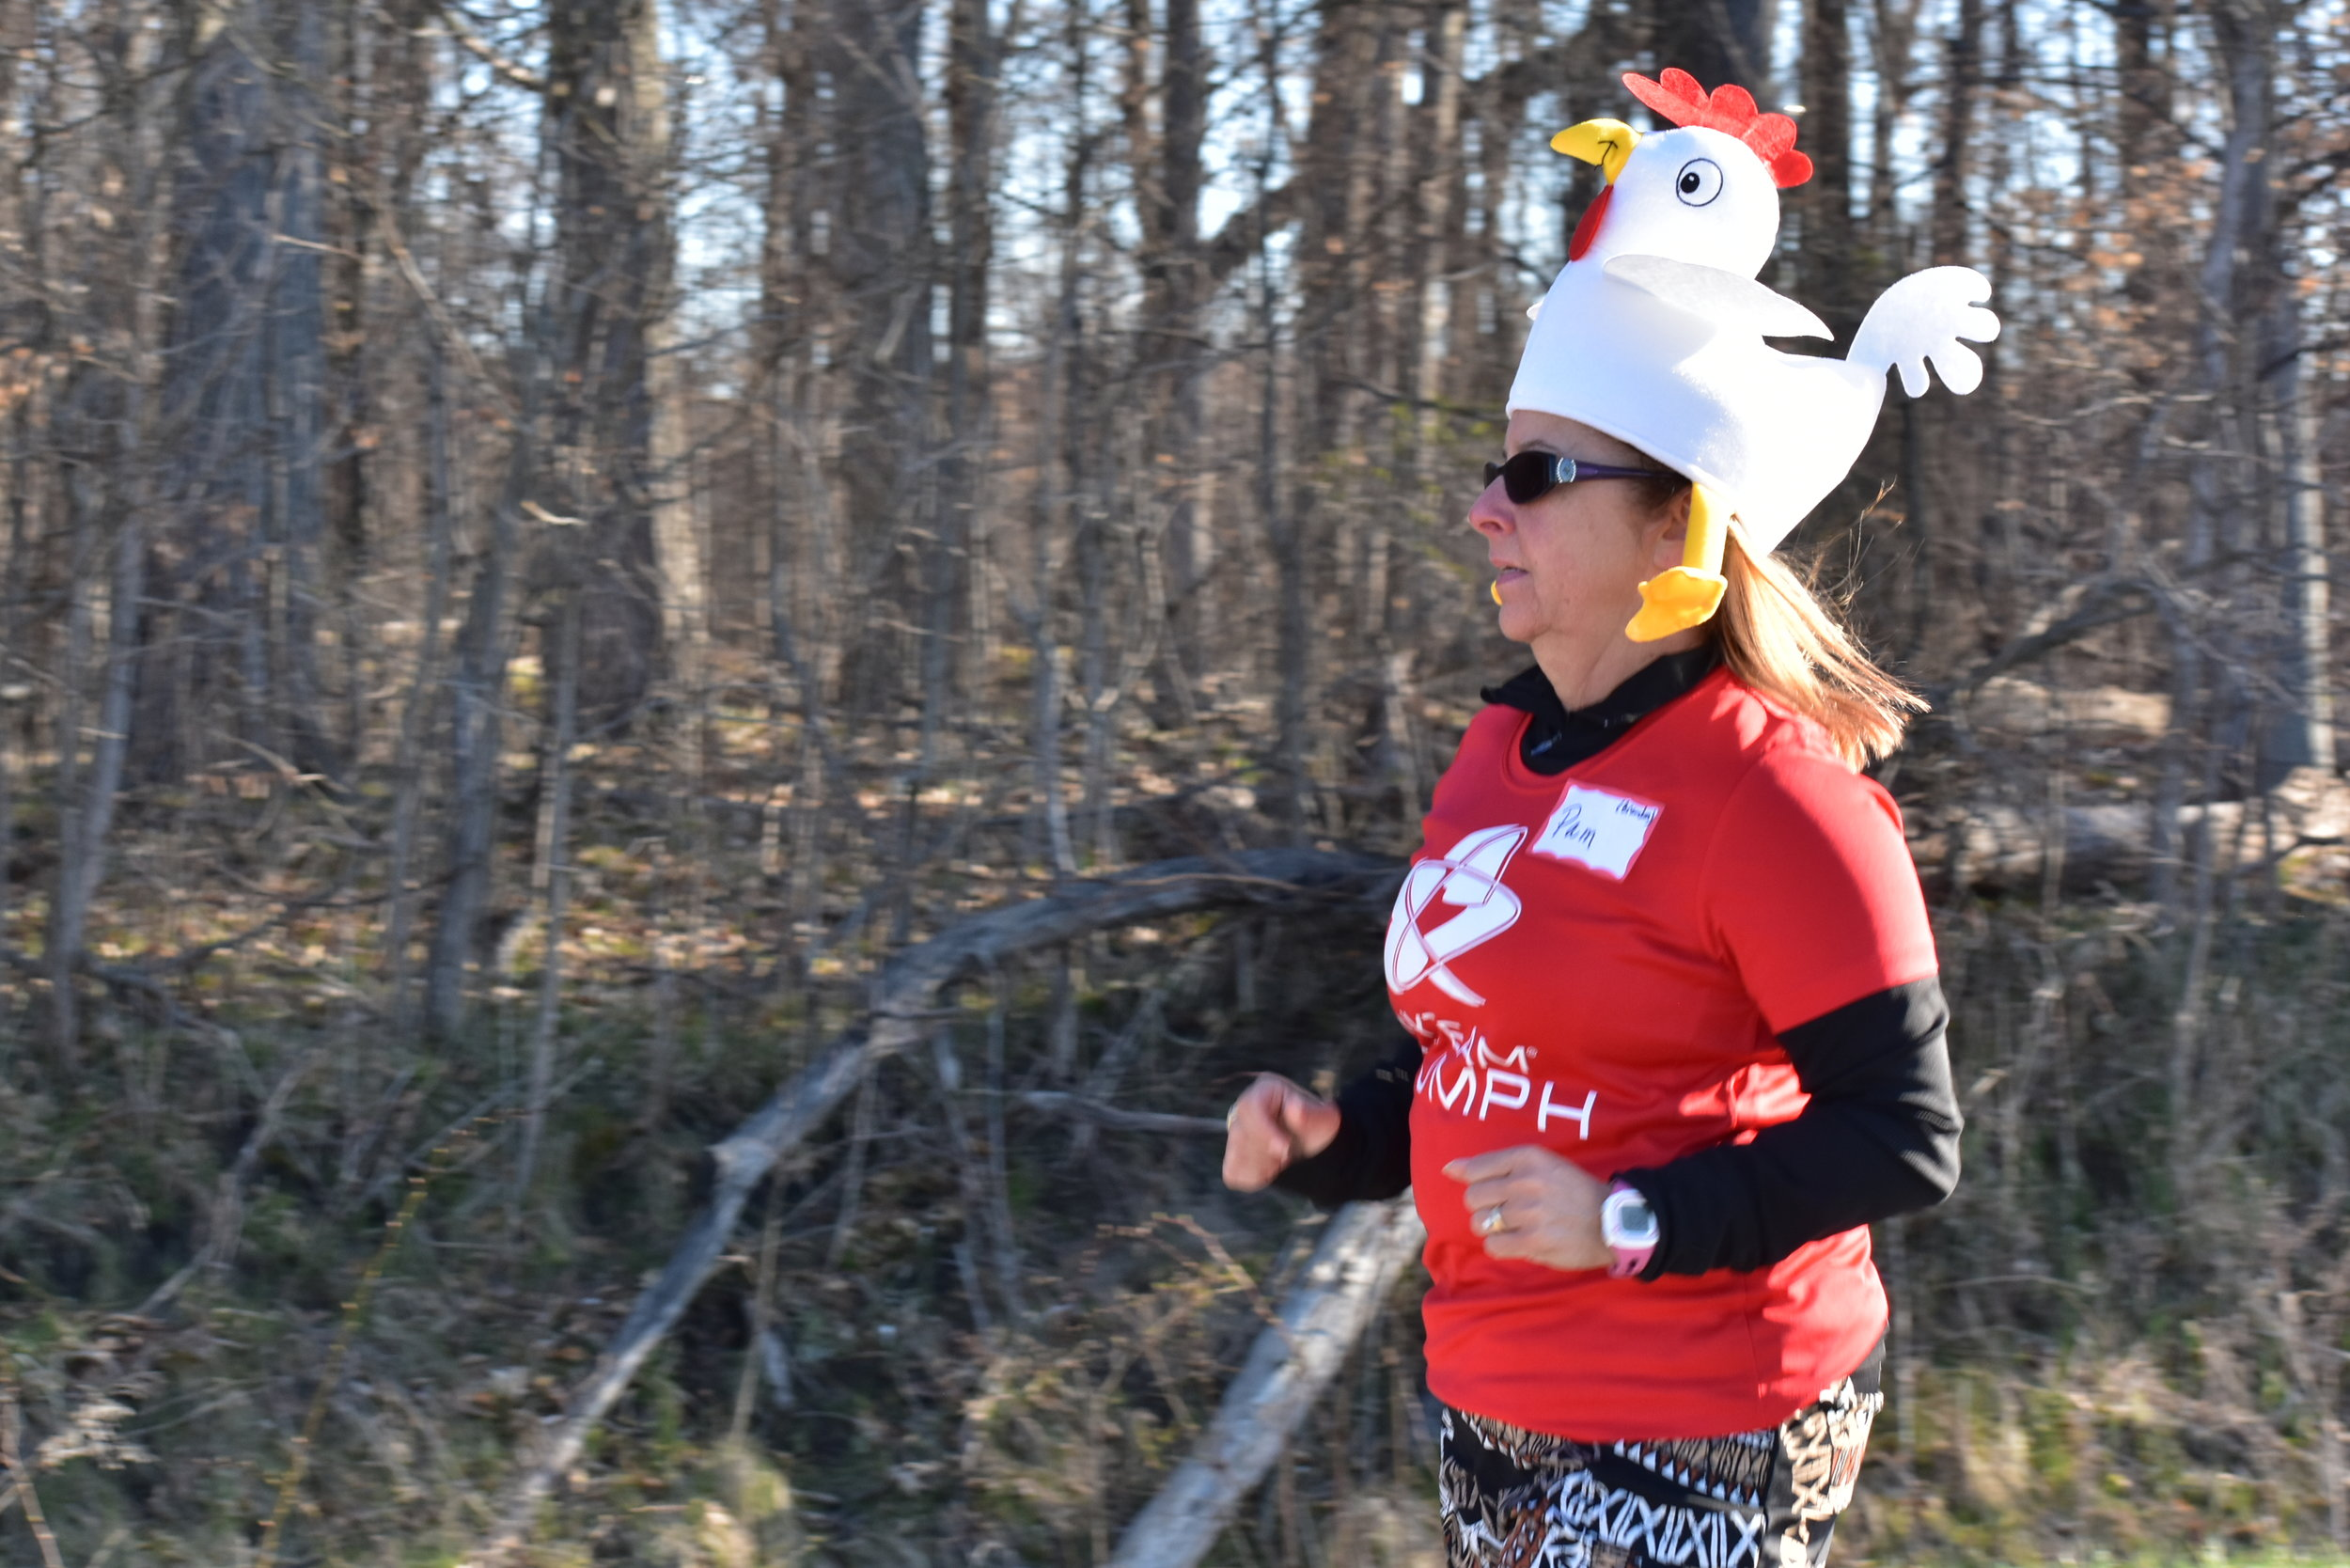 2018 Run Like an Animal - 5K by Heidi 005.JPG